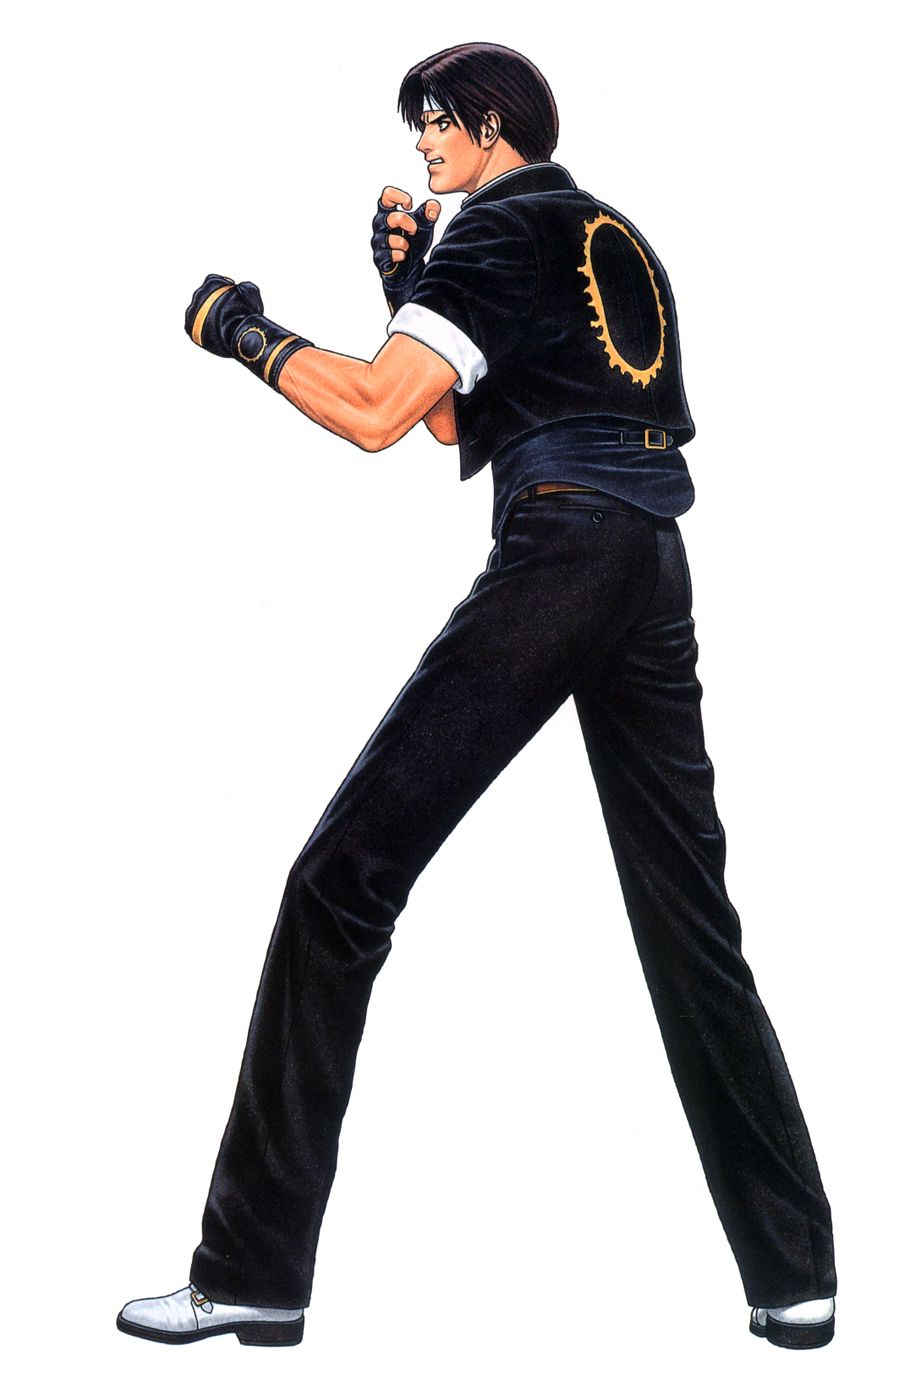 King Of Coins Pentacles As Advice: Kyo Kusanagi (King Of Fighters